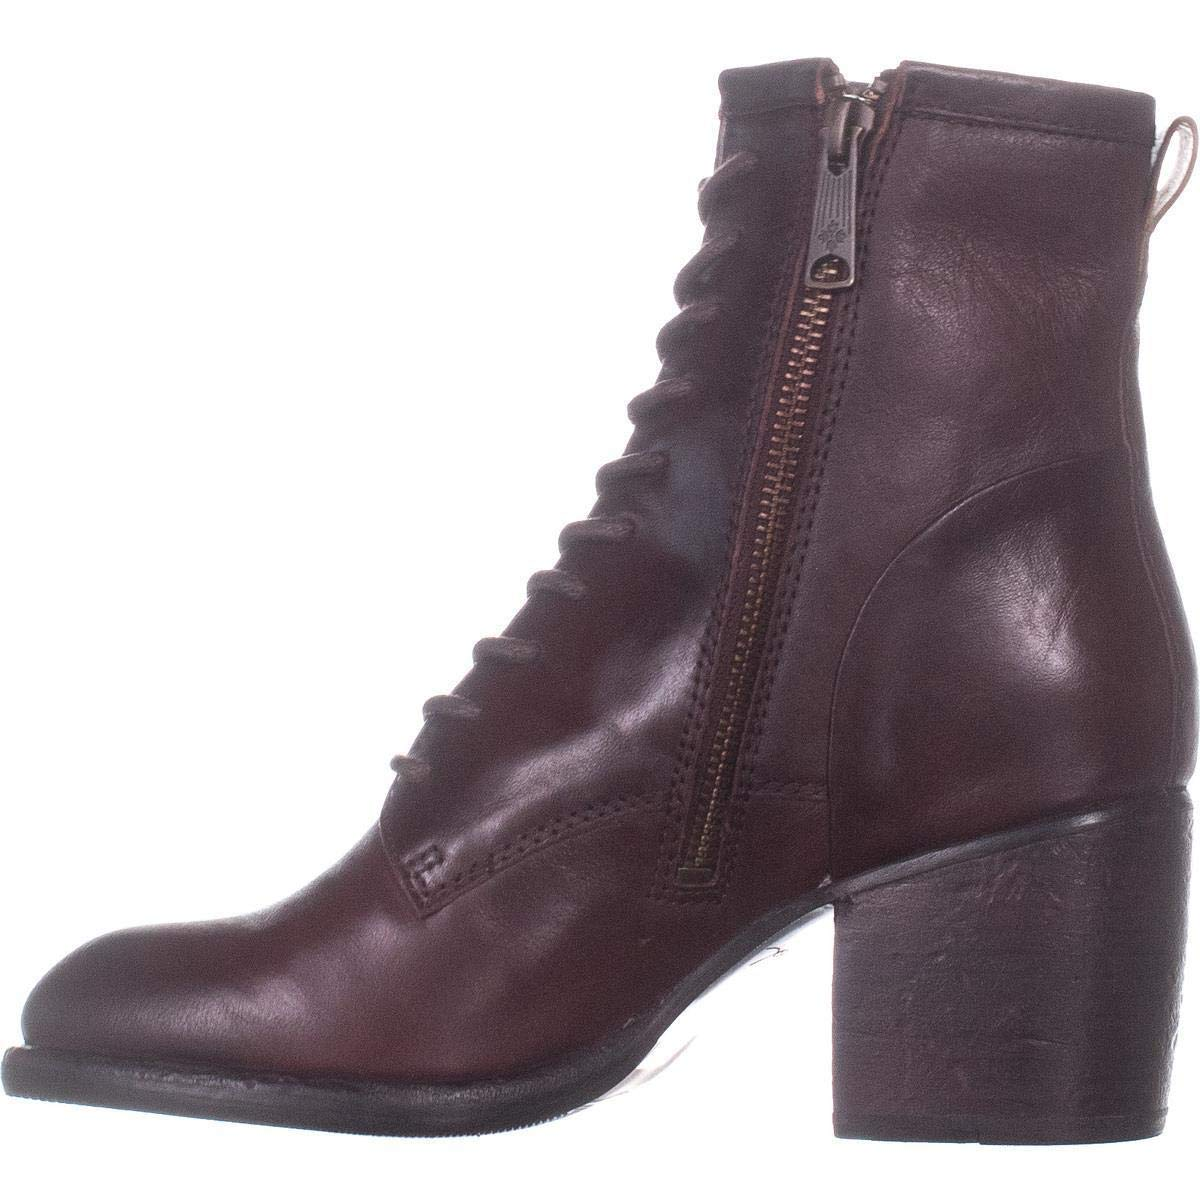 thumbnail 11 - Patricia-Nash-Womens-Sicily-Leather-Closed-Toe-Ankle-Fashion-Boots